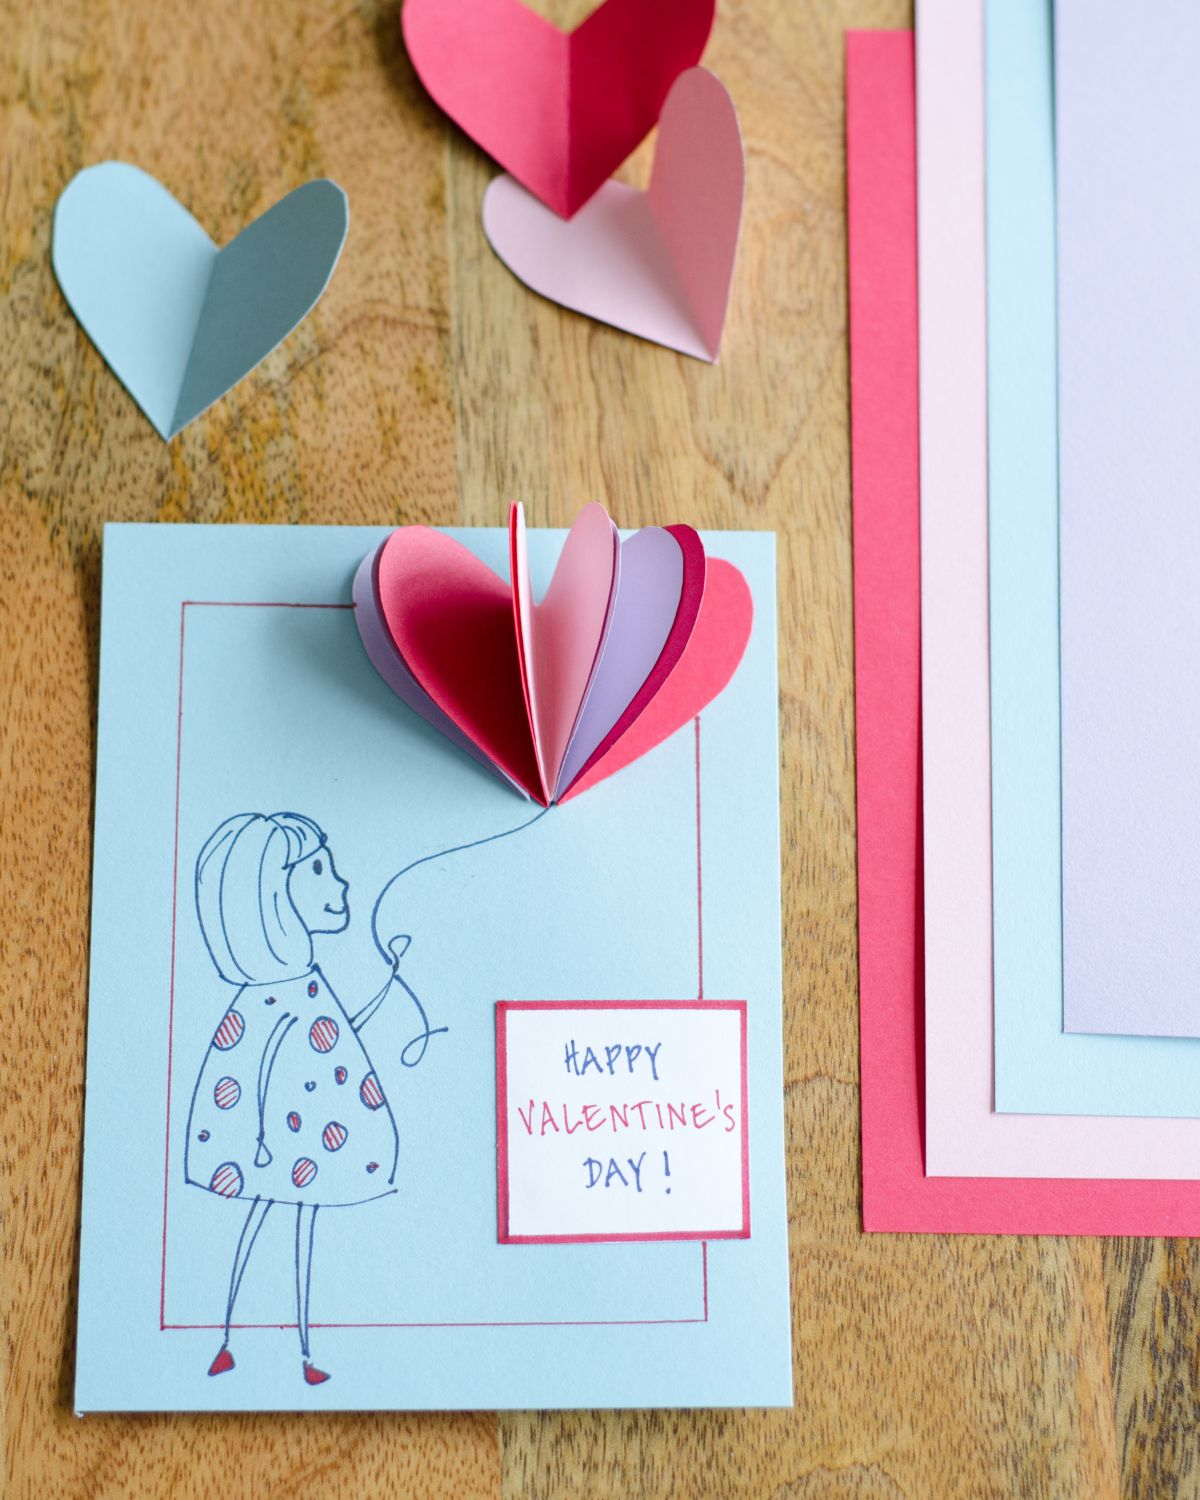 Easy Diy Valentines Cards Using Simple Folded Paper Hearts Con